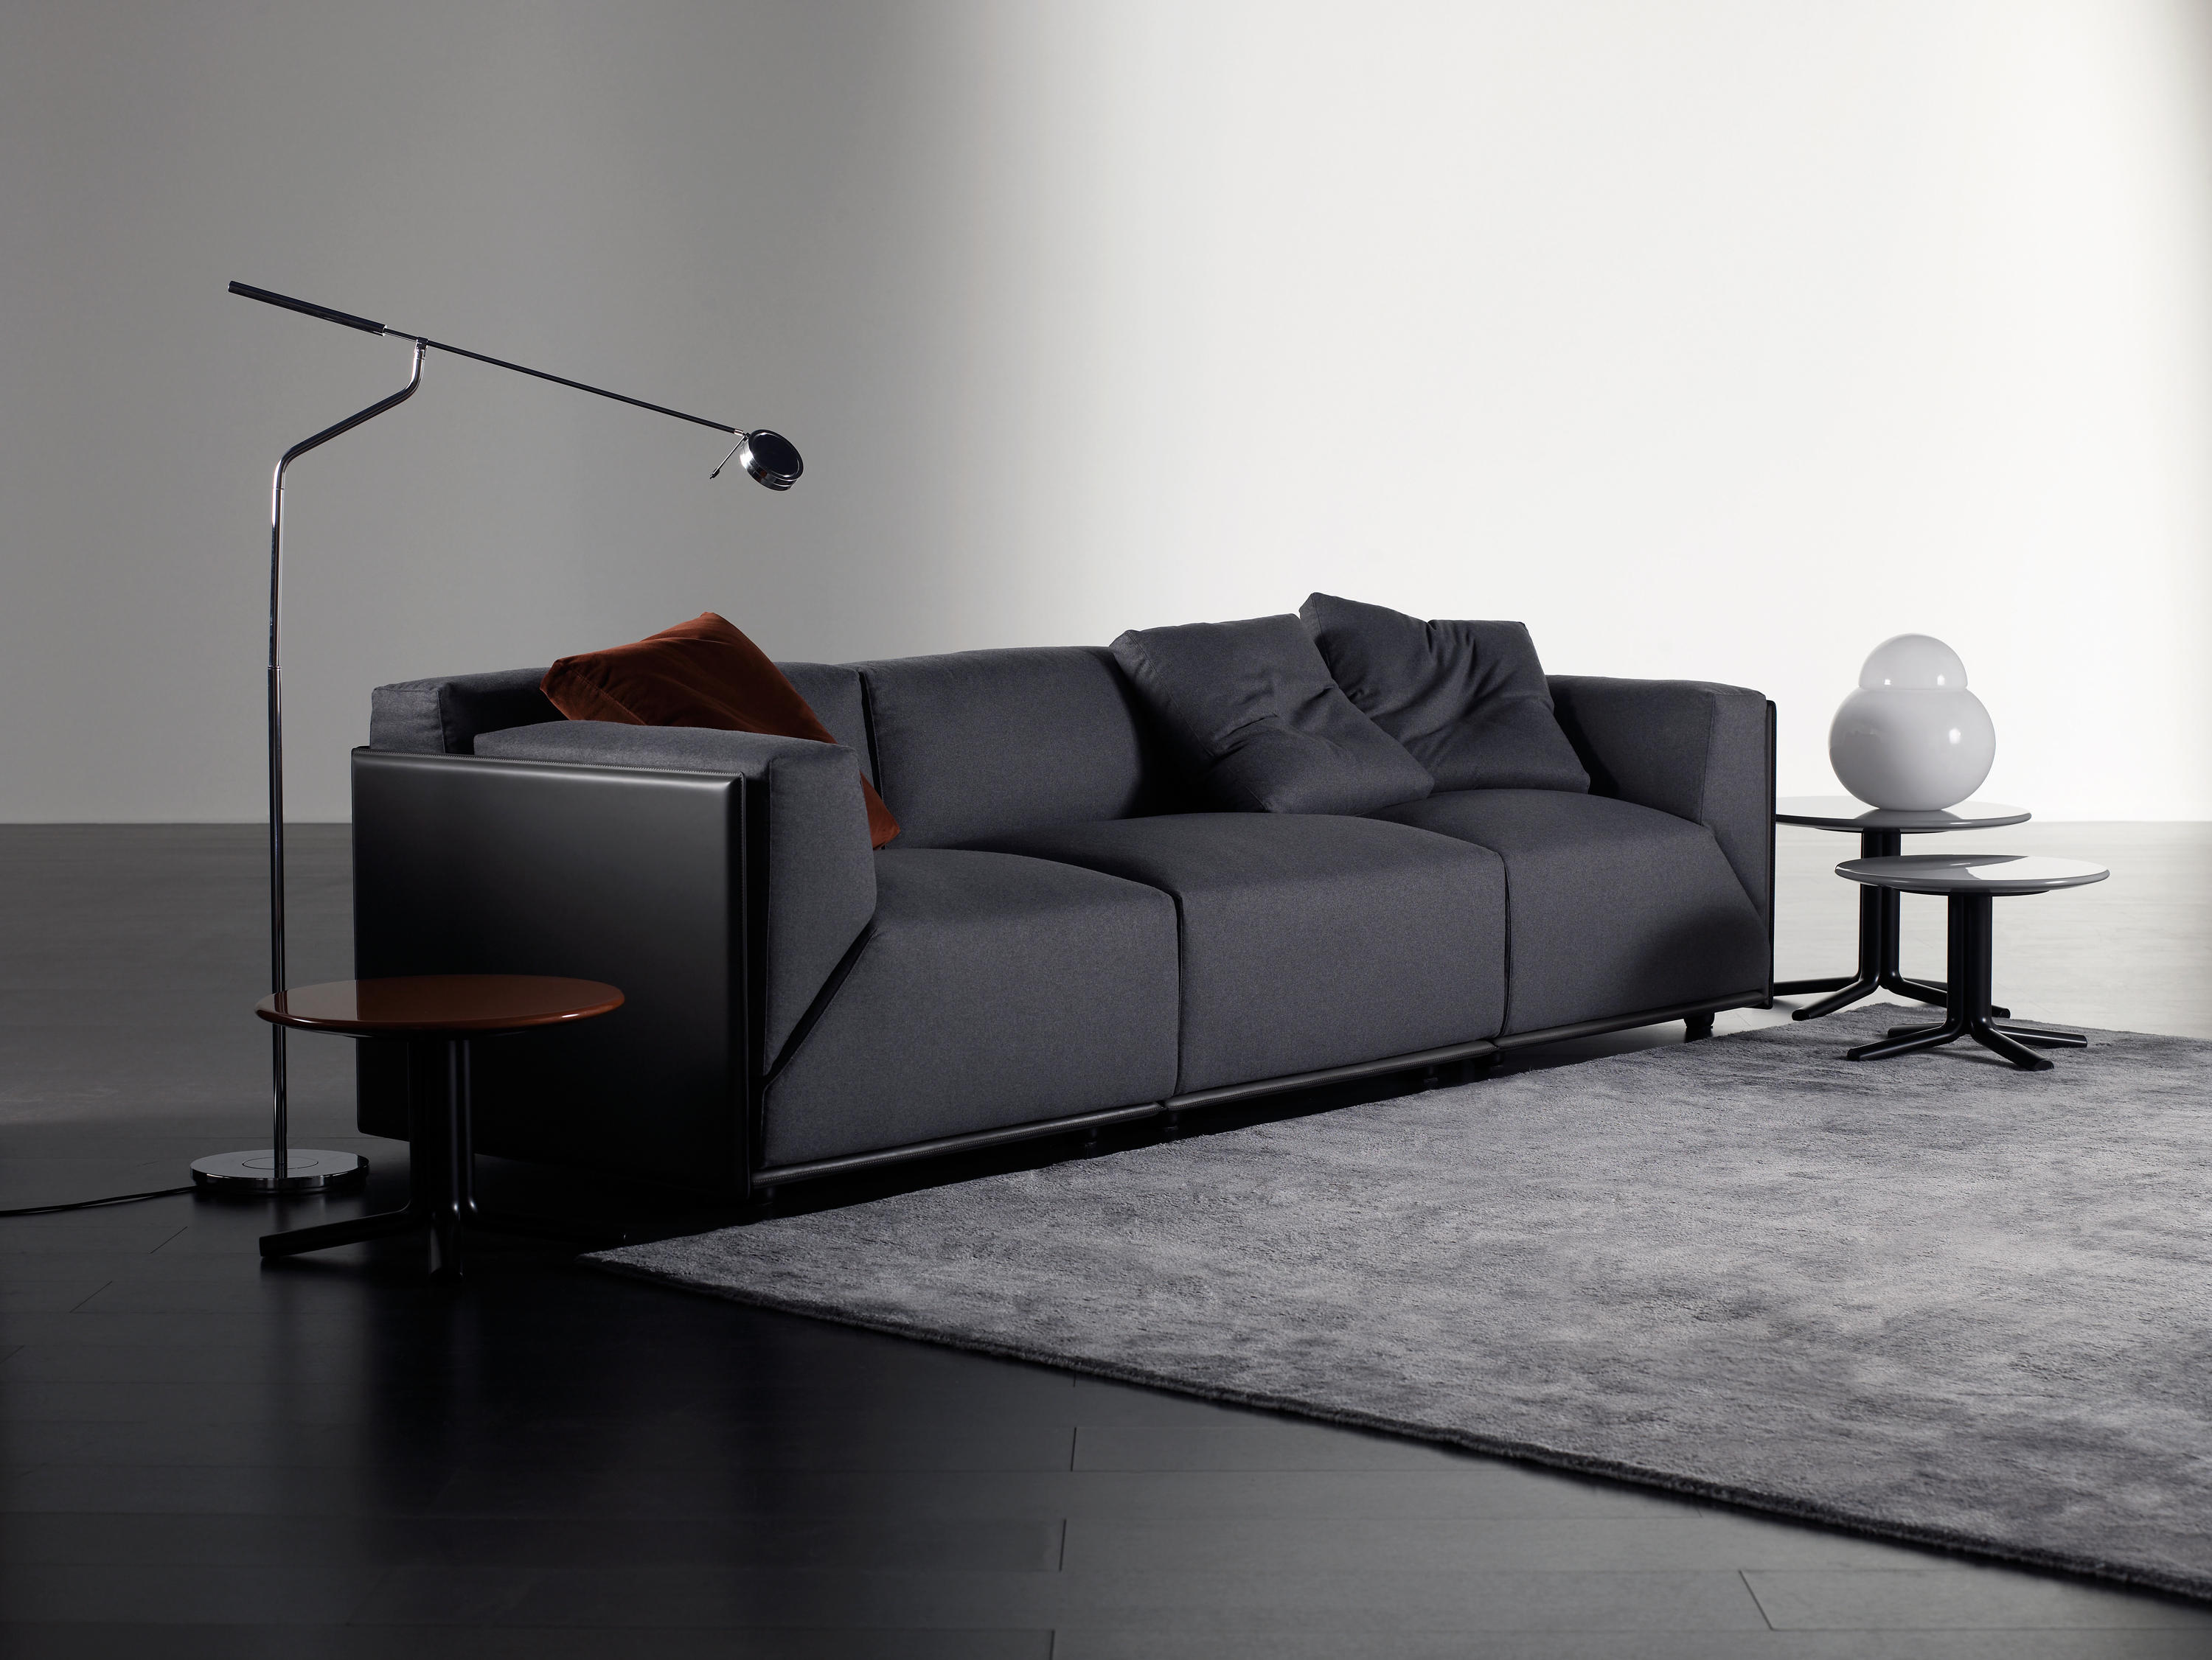 Bacon kuoio lounge sofas from meridiani architonic bacon kuoio by meridiani lounge sofas parisarafo Image collections